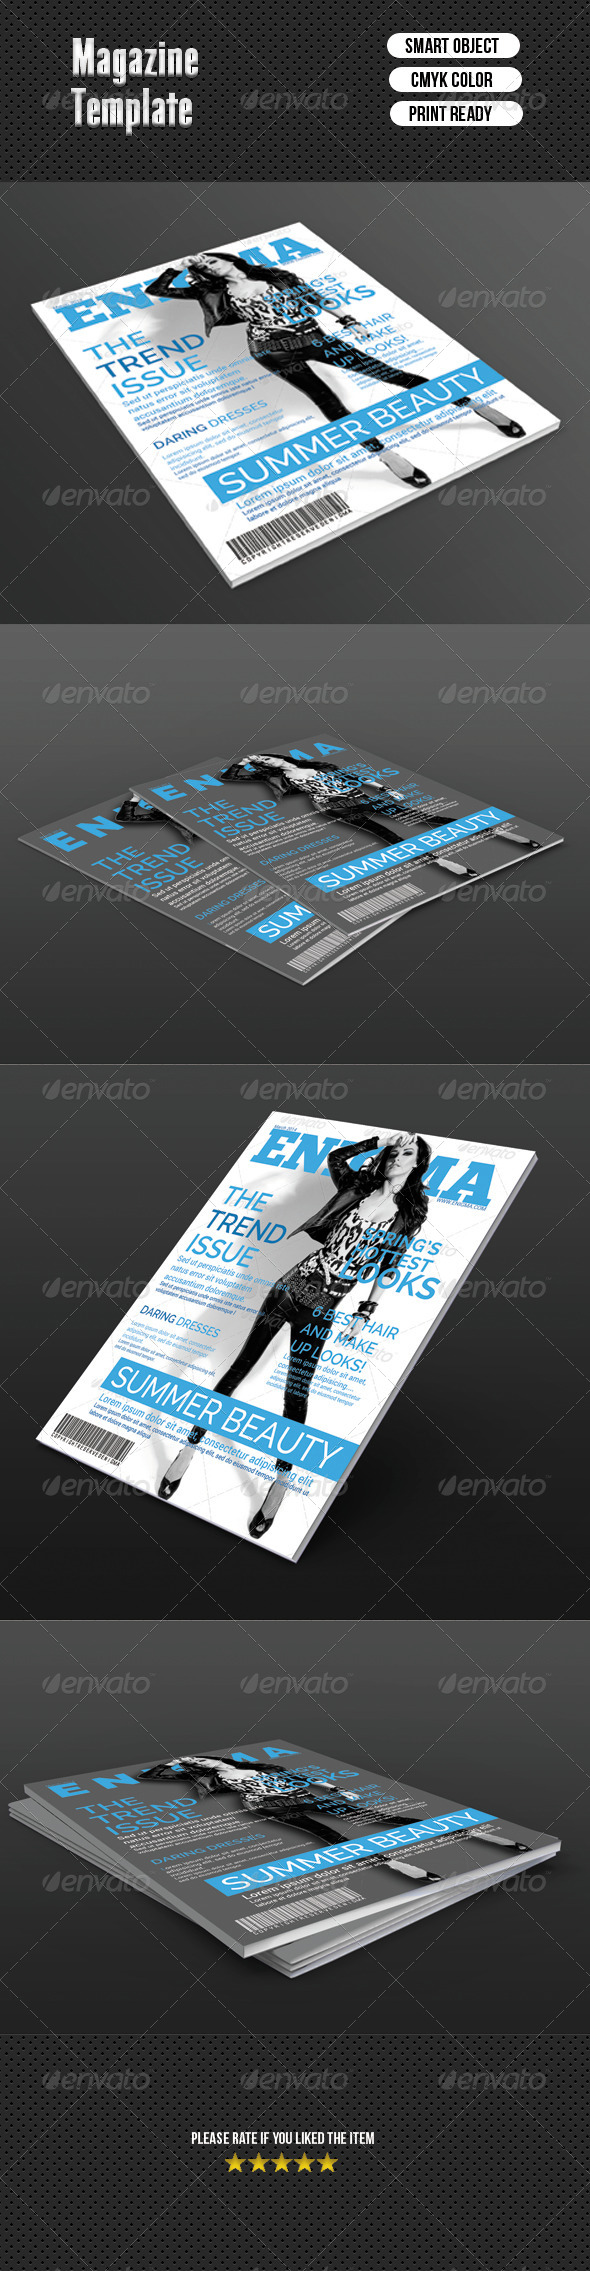 GraphicRiver Fashion Magazine Cover Template 7043462